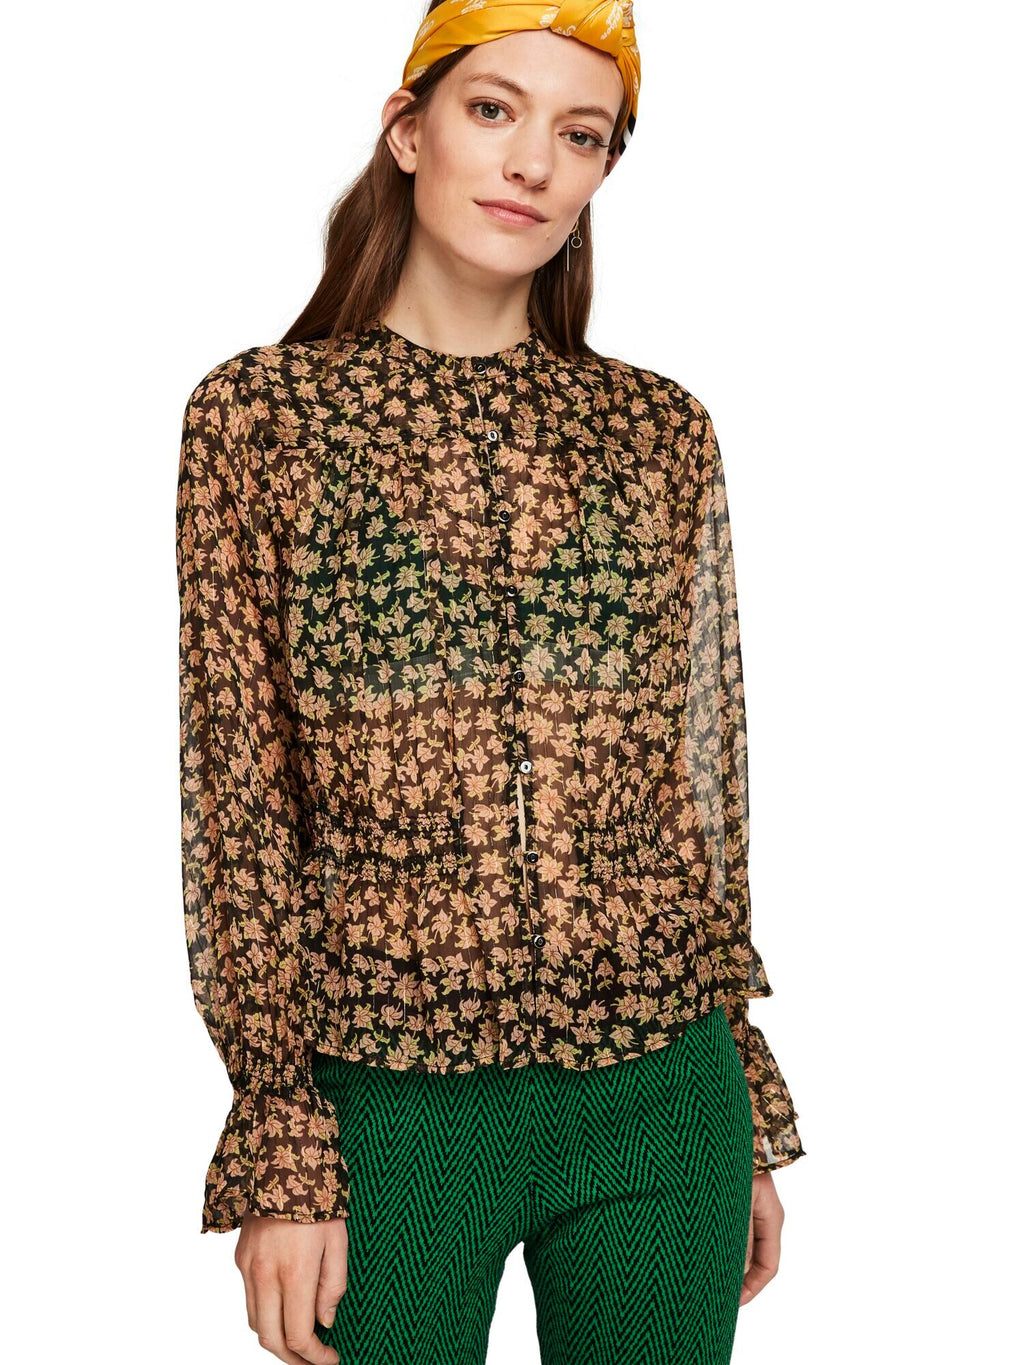 Buy Sheer Peplum Blouse from SCOTCH AND SODA at PAYA boutique